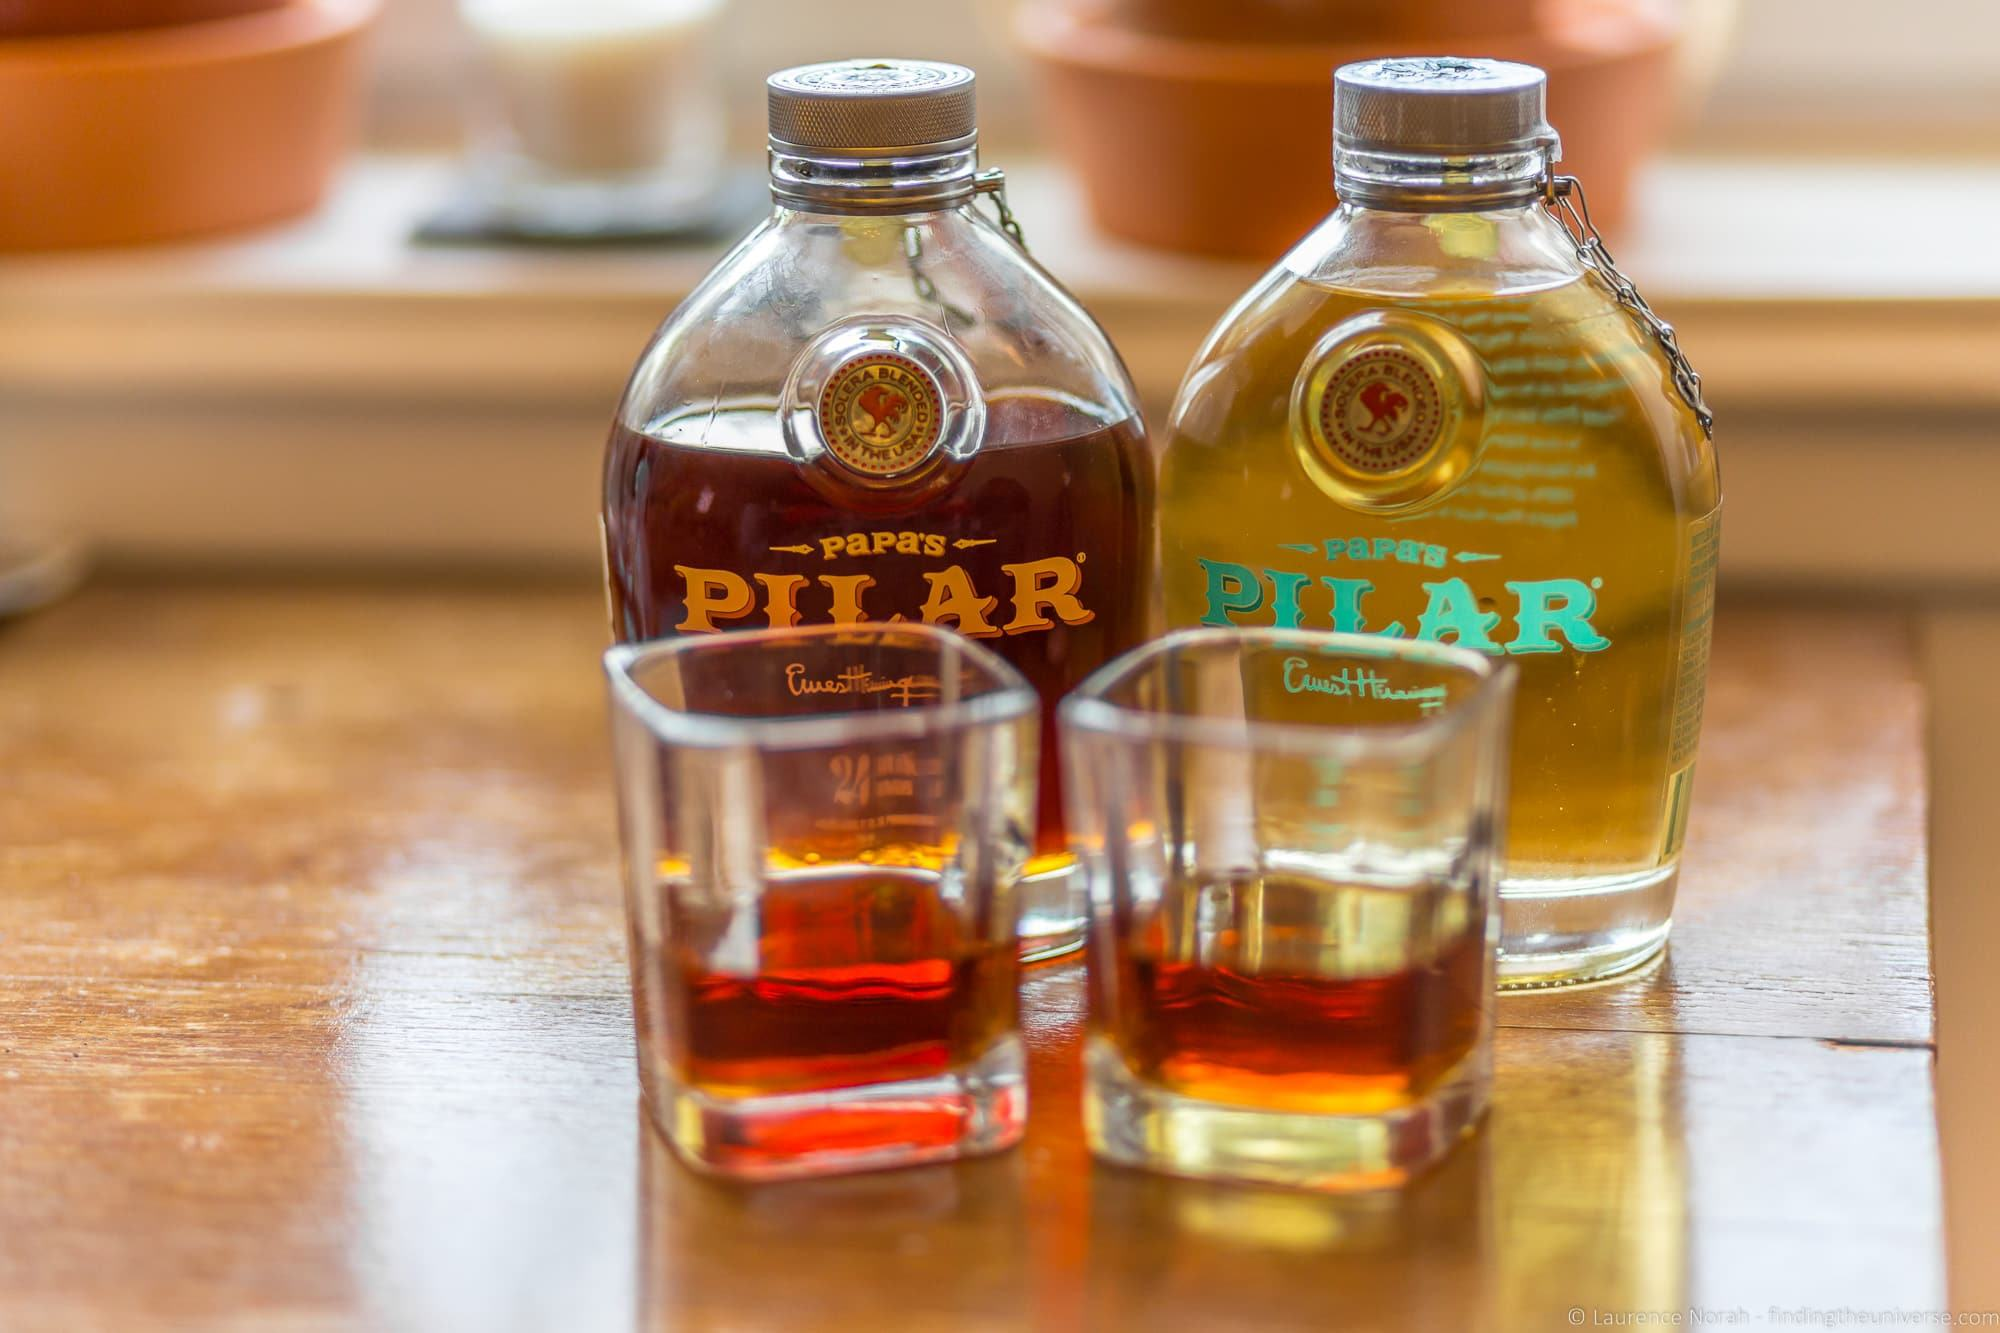 Papa's Pilar rum Ernest Hemingway in Key West Florida sites attractions